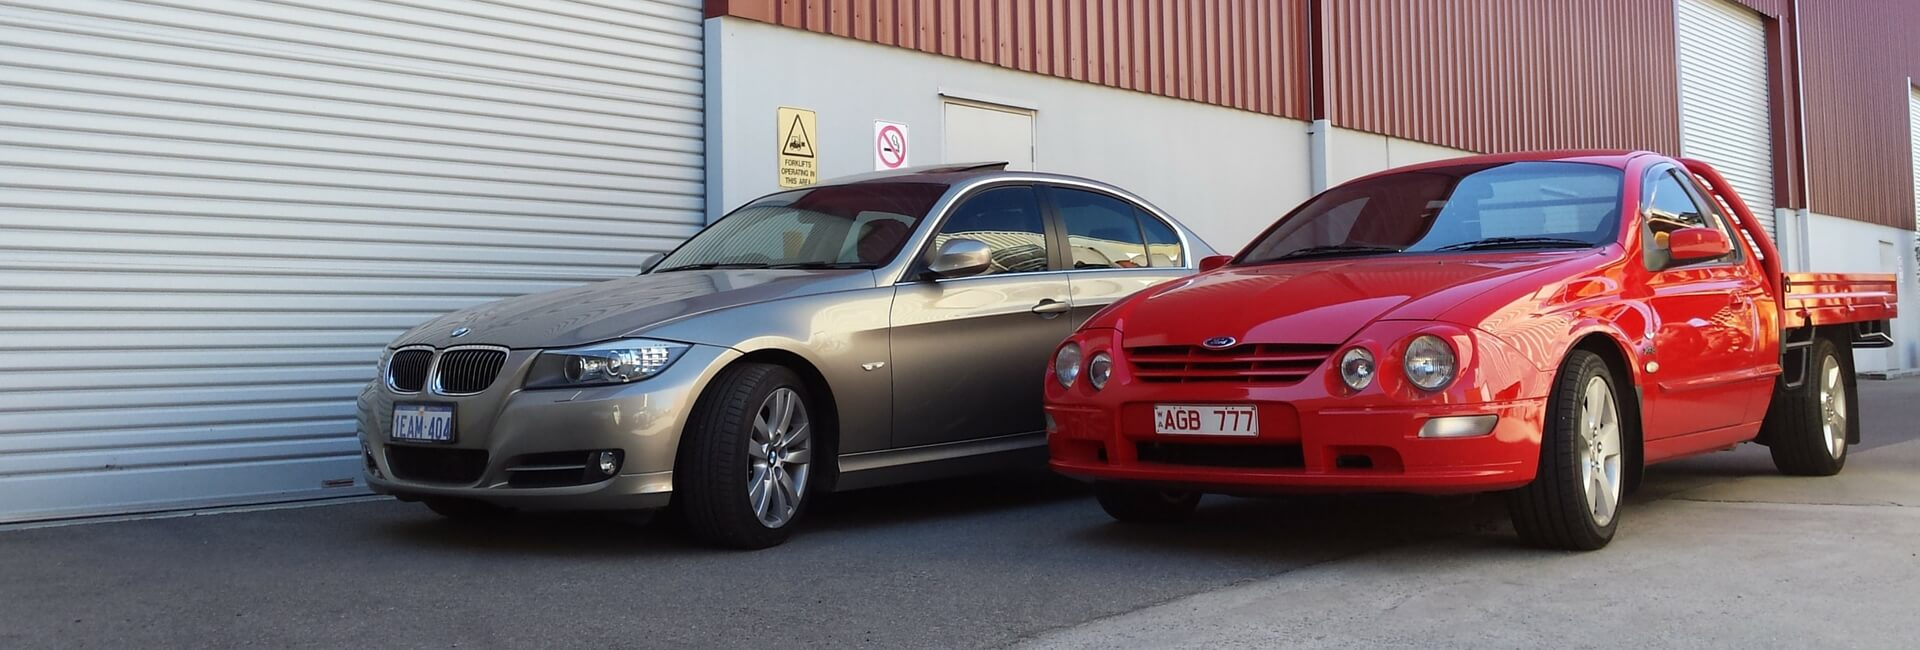 Many different types of vehicles are stored at AGB , such as these fine examples of a BMW 3201, and Ford Falcon XR8 AU11 Ute